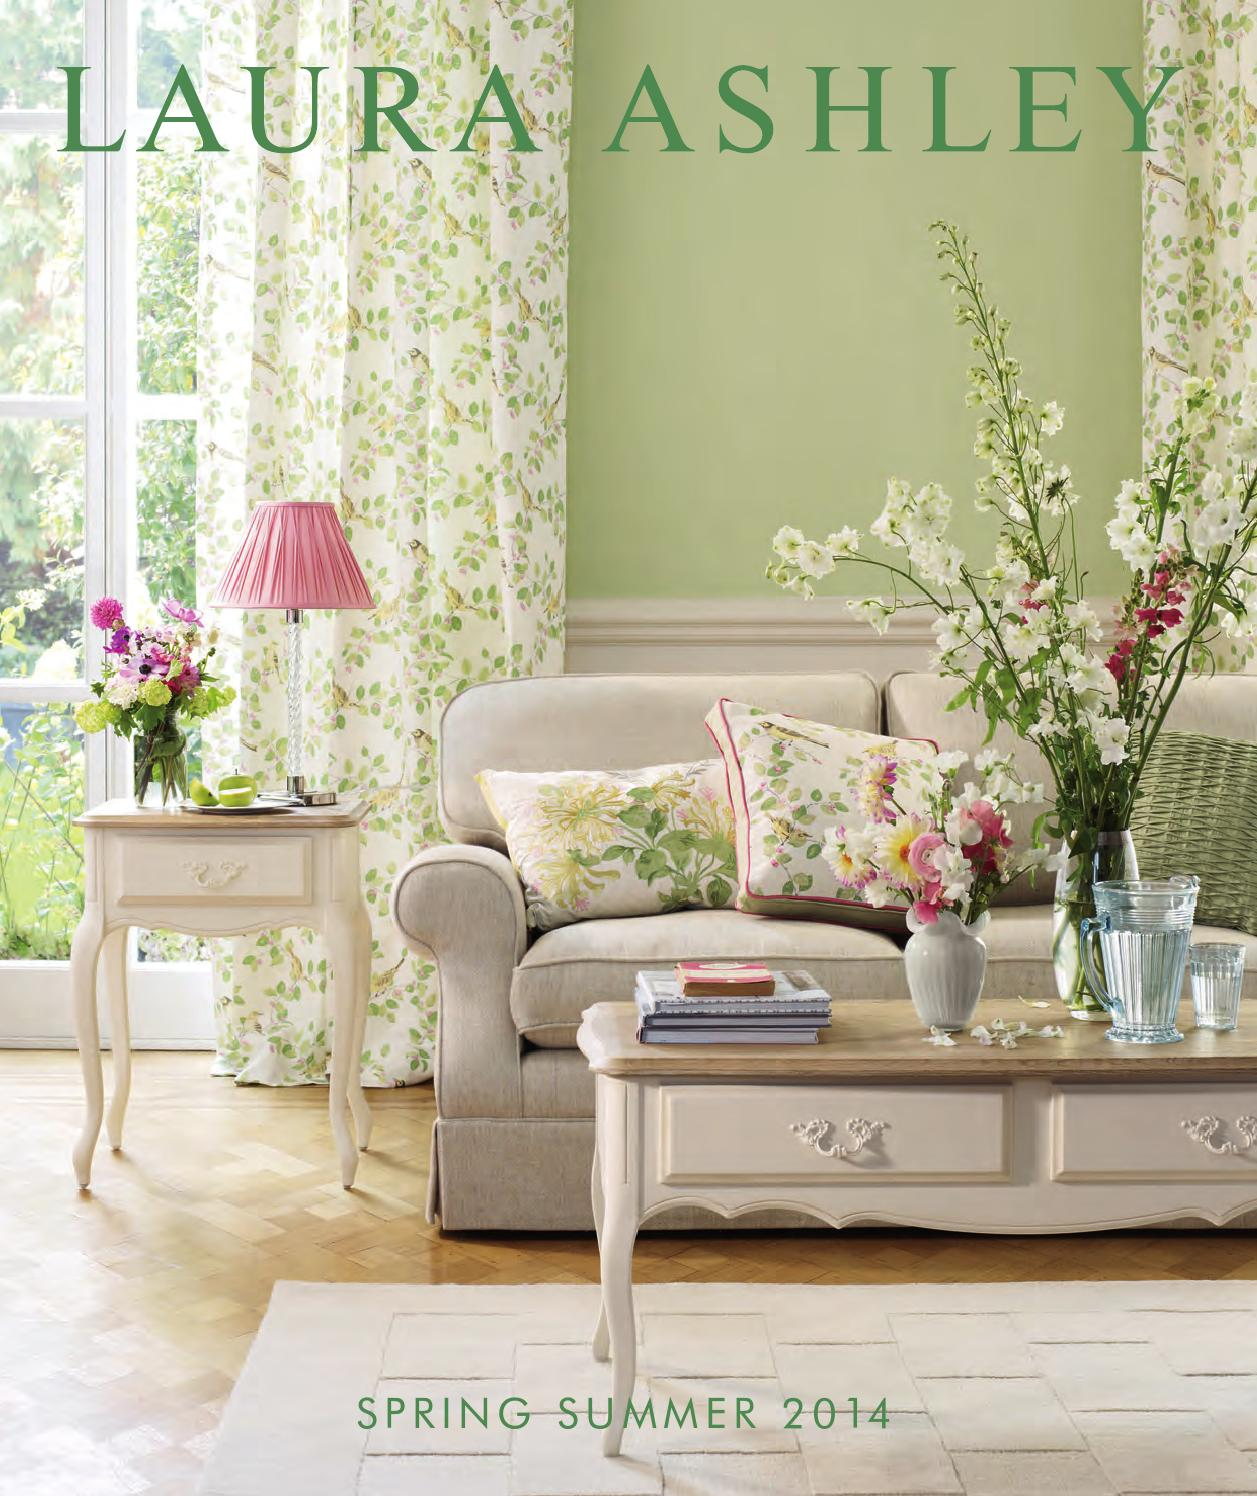 Laura ashley home spring summer 2014 by laura ashley - Catalogo laura ashley ...